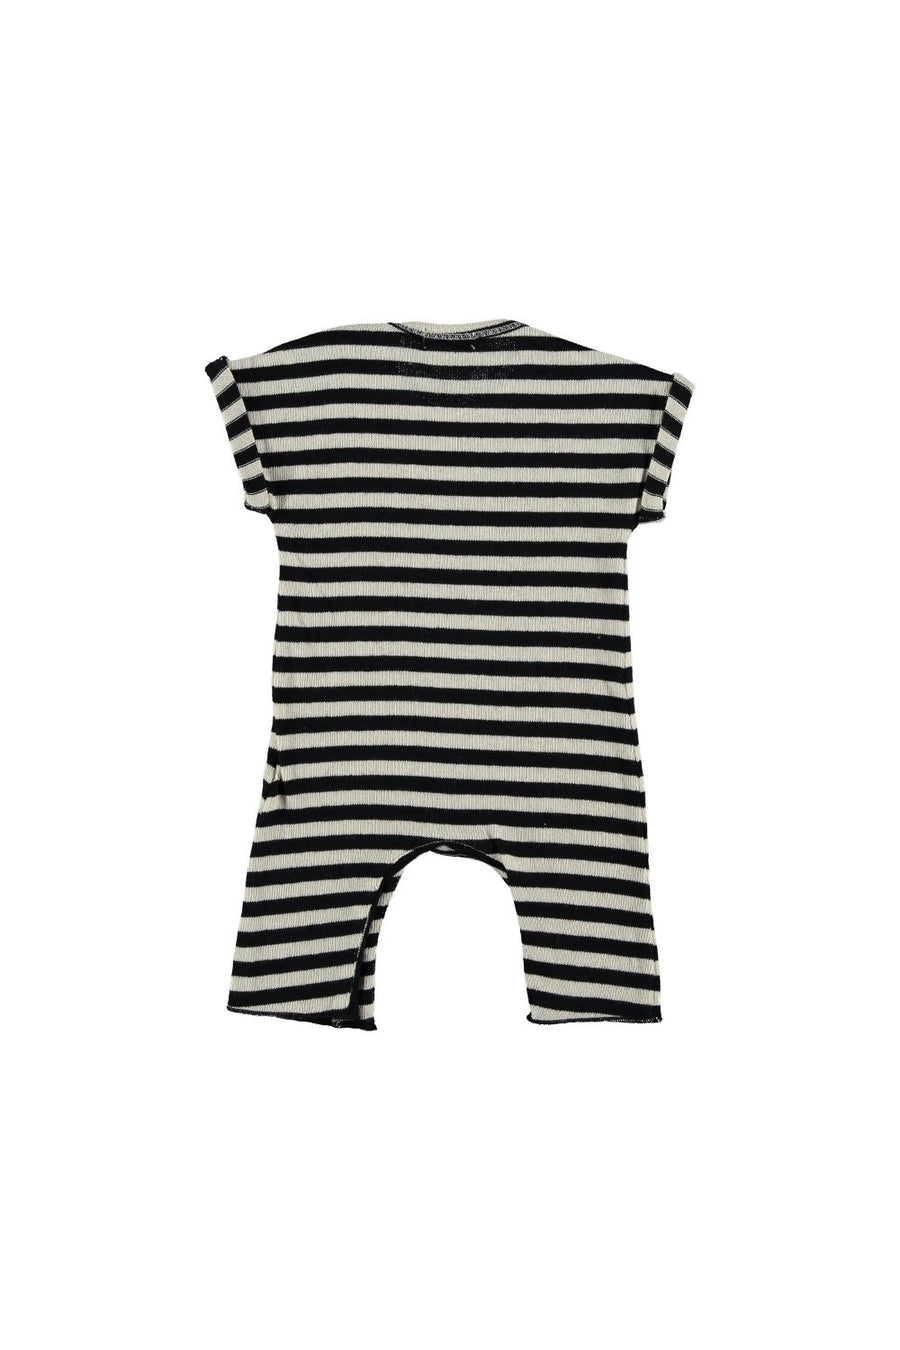 STRIPED KNIT BABY JUMPSUIT